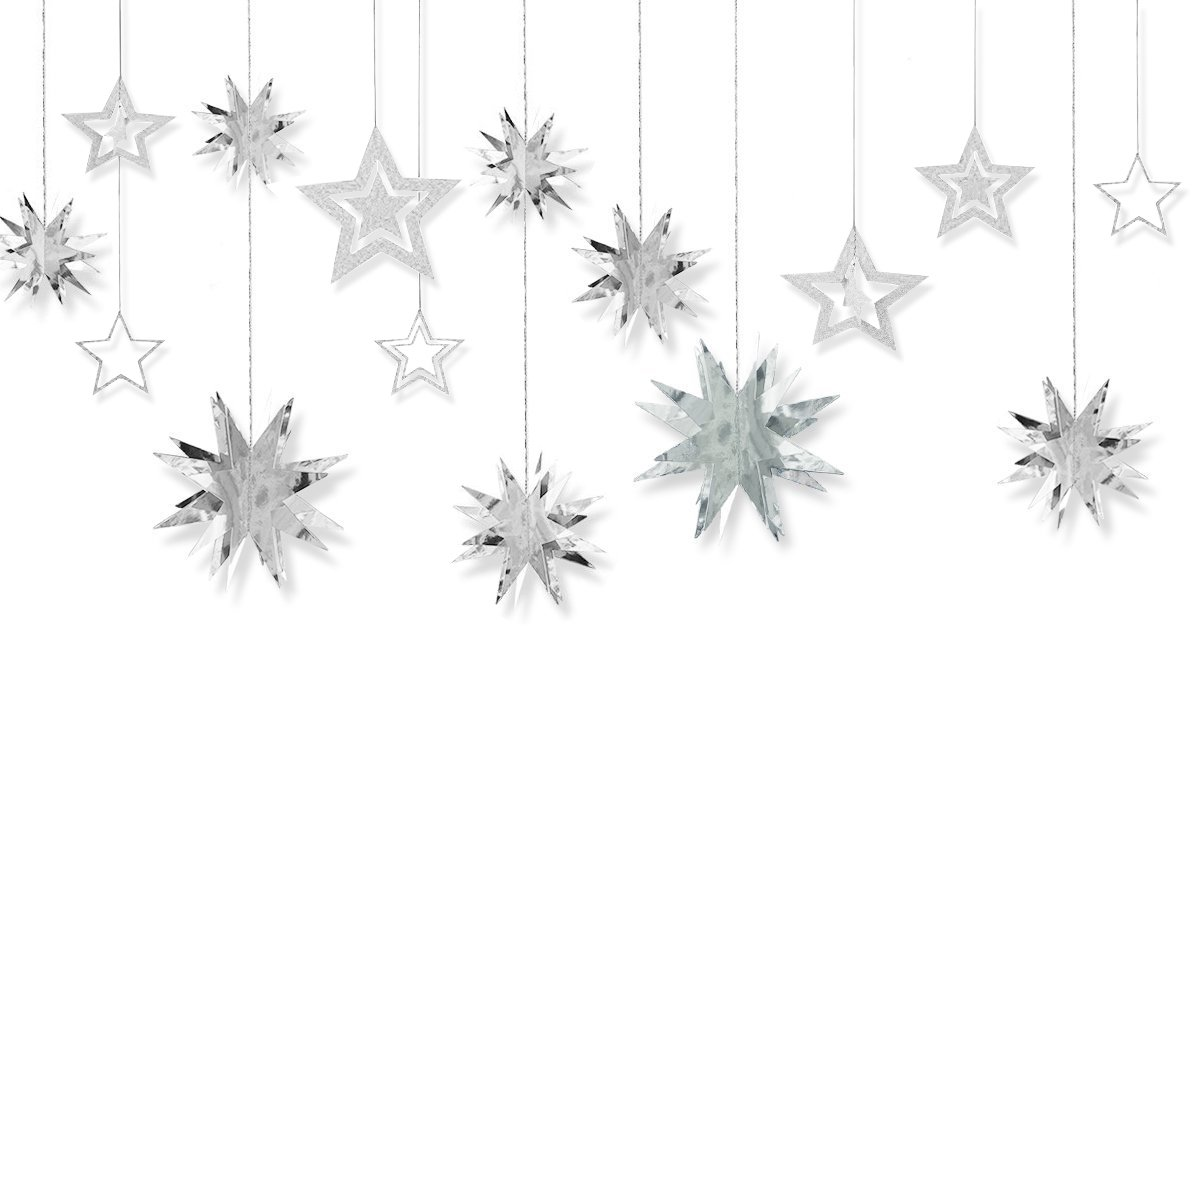 Glitter Twinkle Star Hanging Garland - Sparkly Paper Five-pointed Bunting Banner for Wedding, Kids Room Decoration, Birthday Party, Baby Shower, Silver, 13 pcs